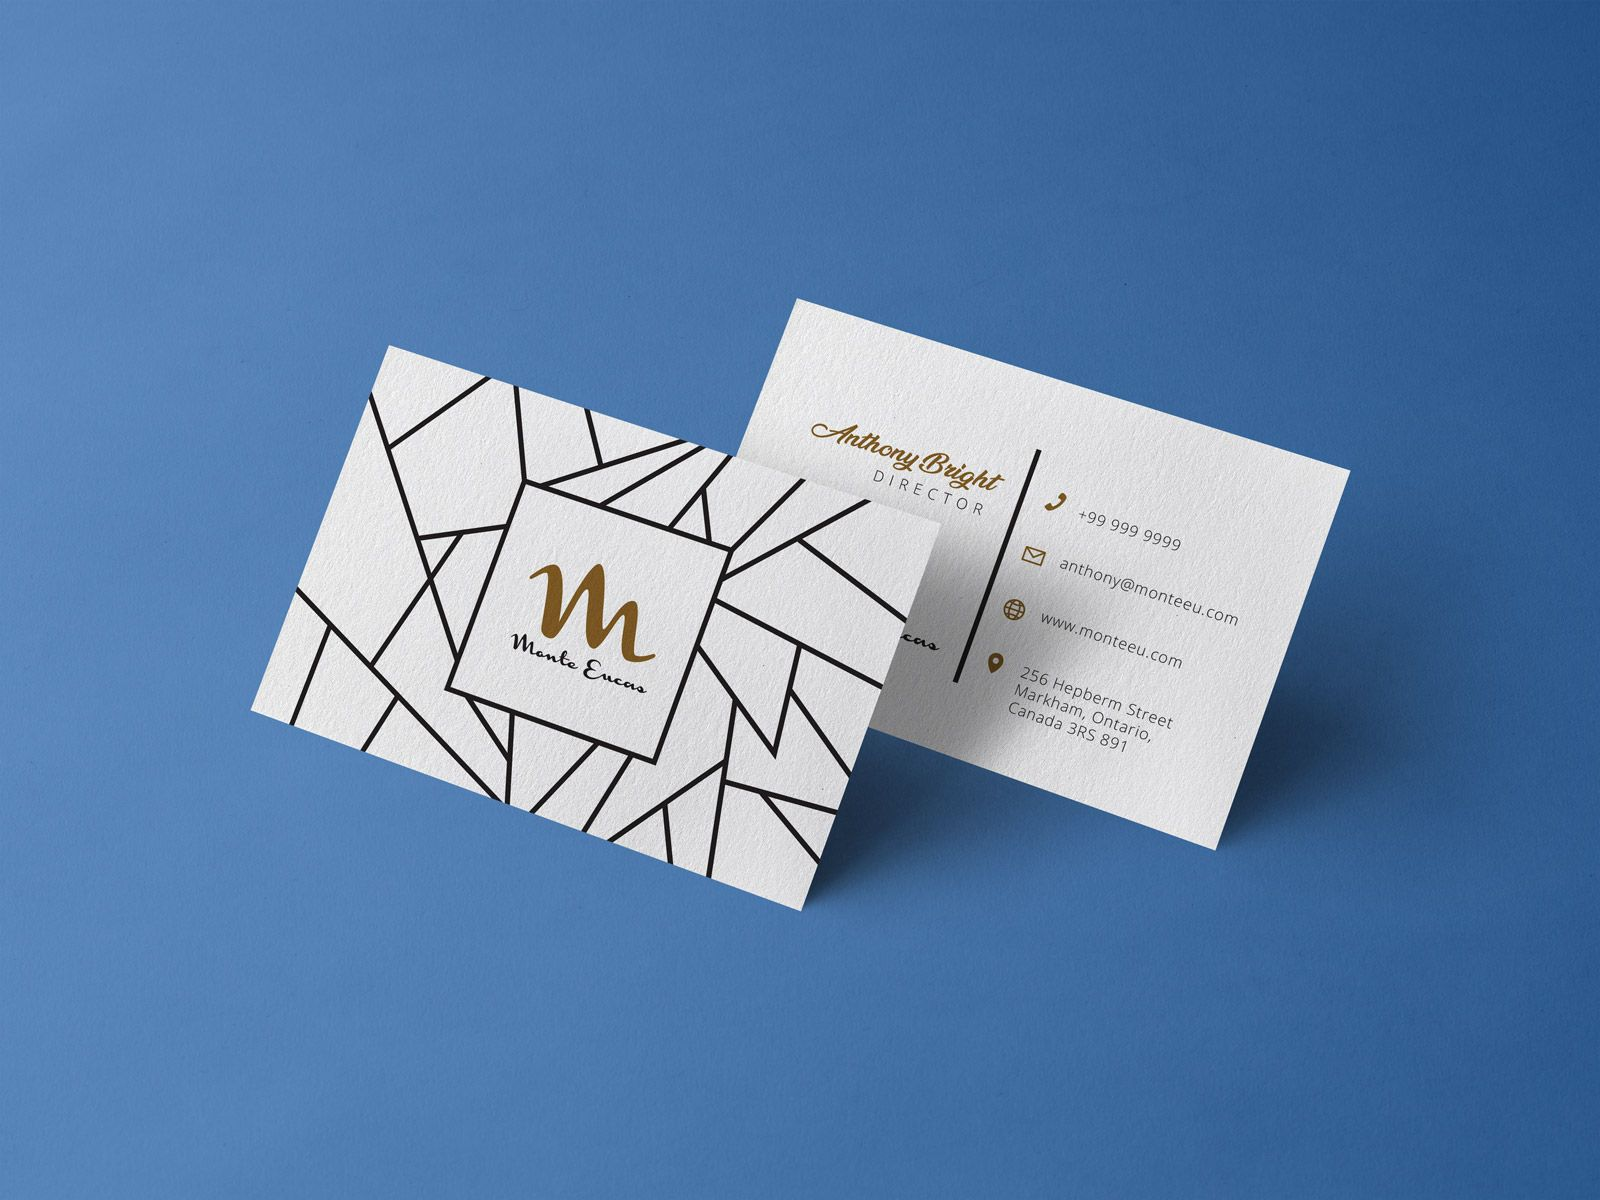 Free Front Back Business Card Design Template Mockup Psd Free Business Card Design Templates Business Card Template Design Free Business Card Design